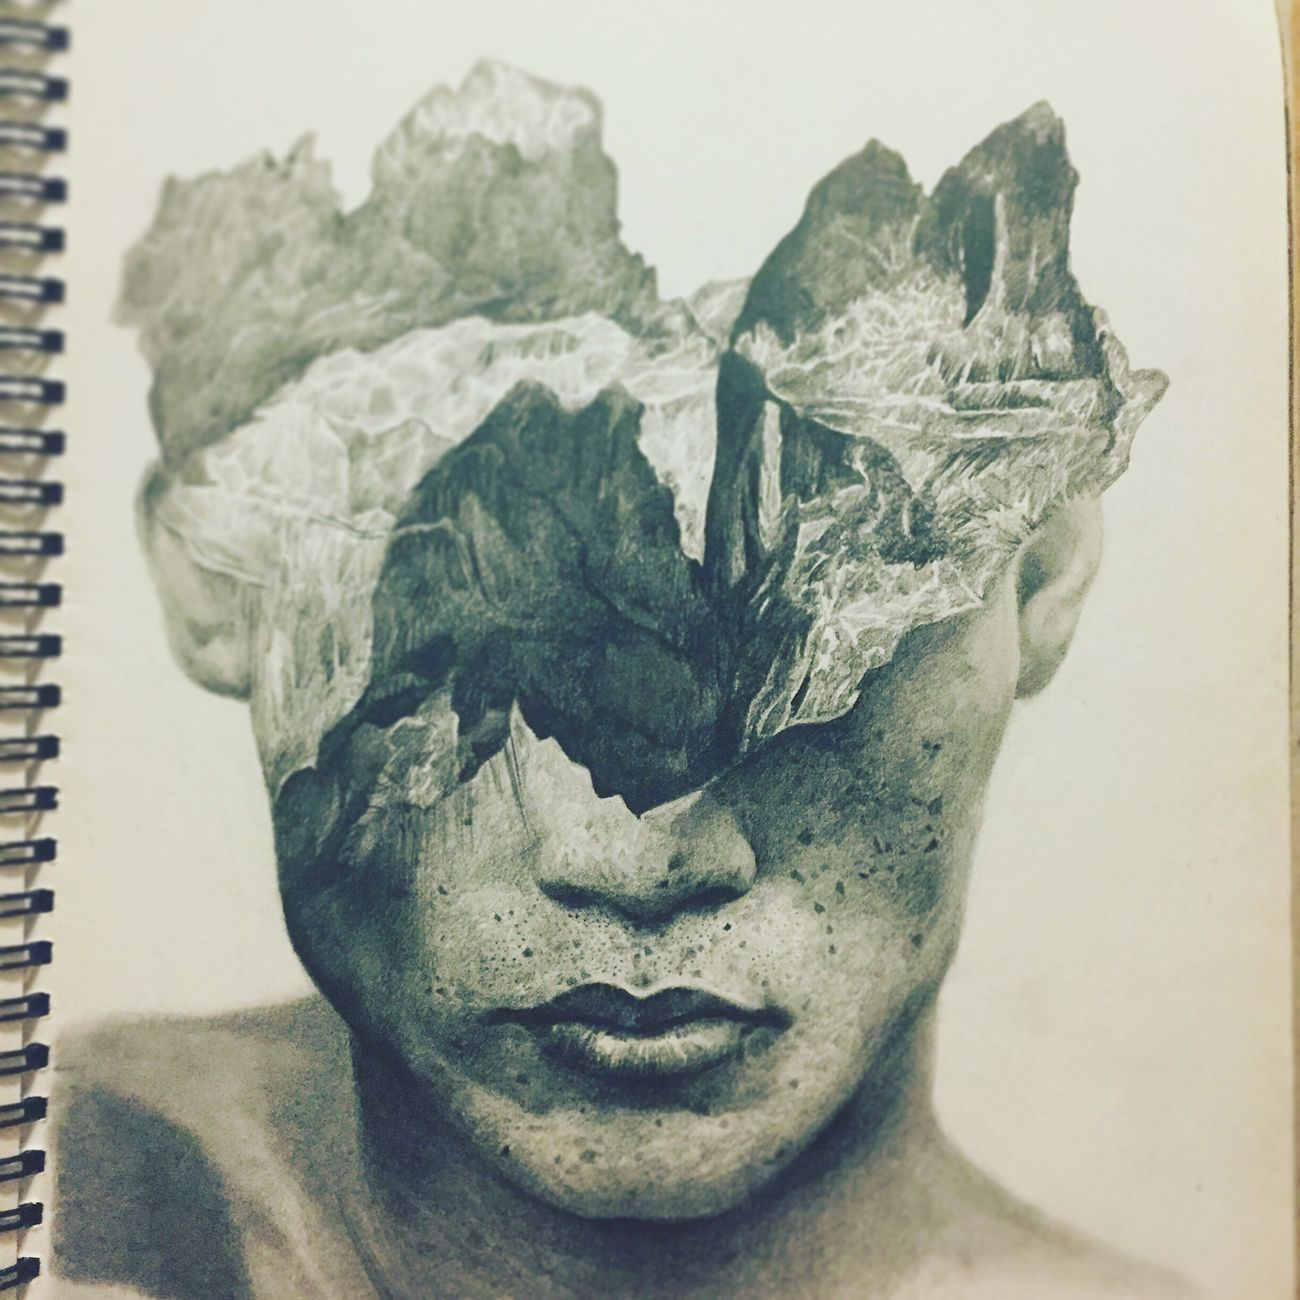 Double exposure Double Exposure Doubleexposure Pencil Drawing Pencil GraphitePencil Graphite Drawing Sketch Life In Motion Portrait